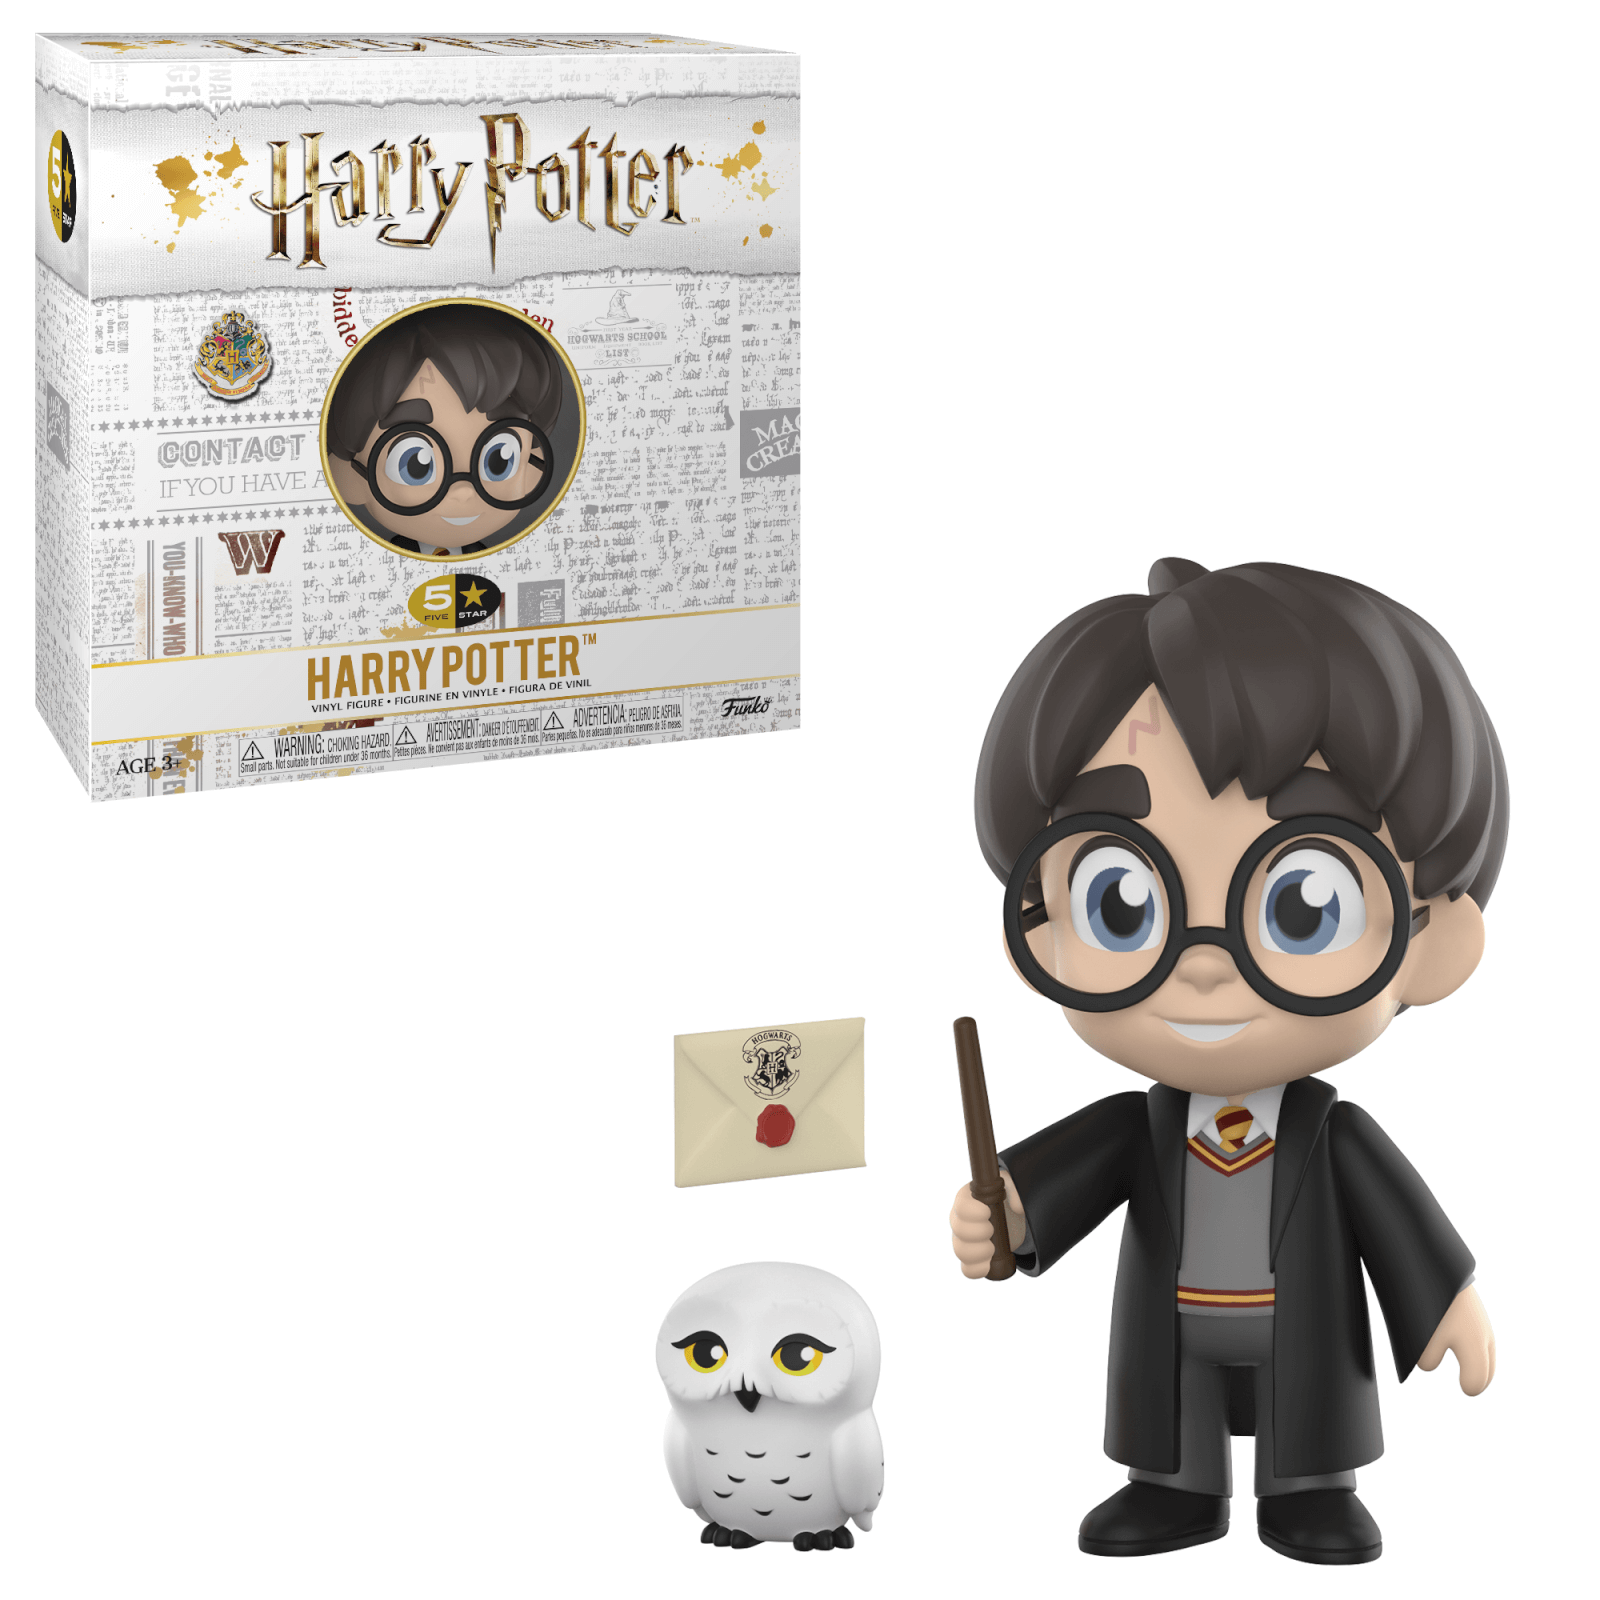 Funko 5 Star Vinyl Figure: Harry Potter - Harry Potter